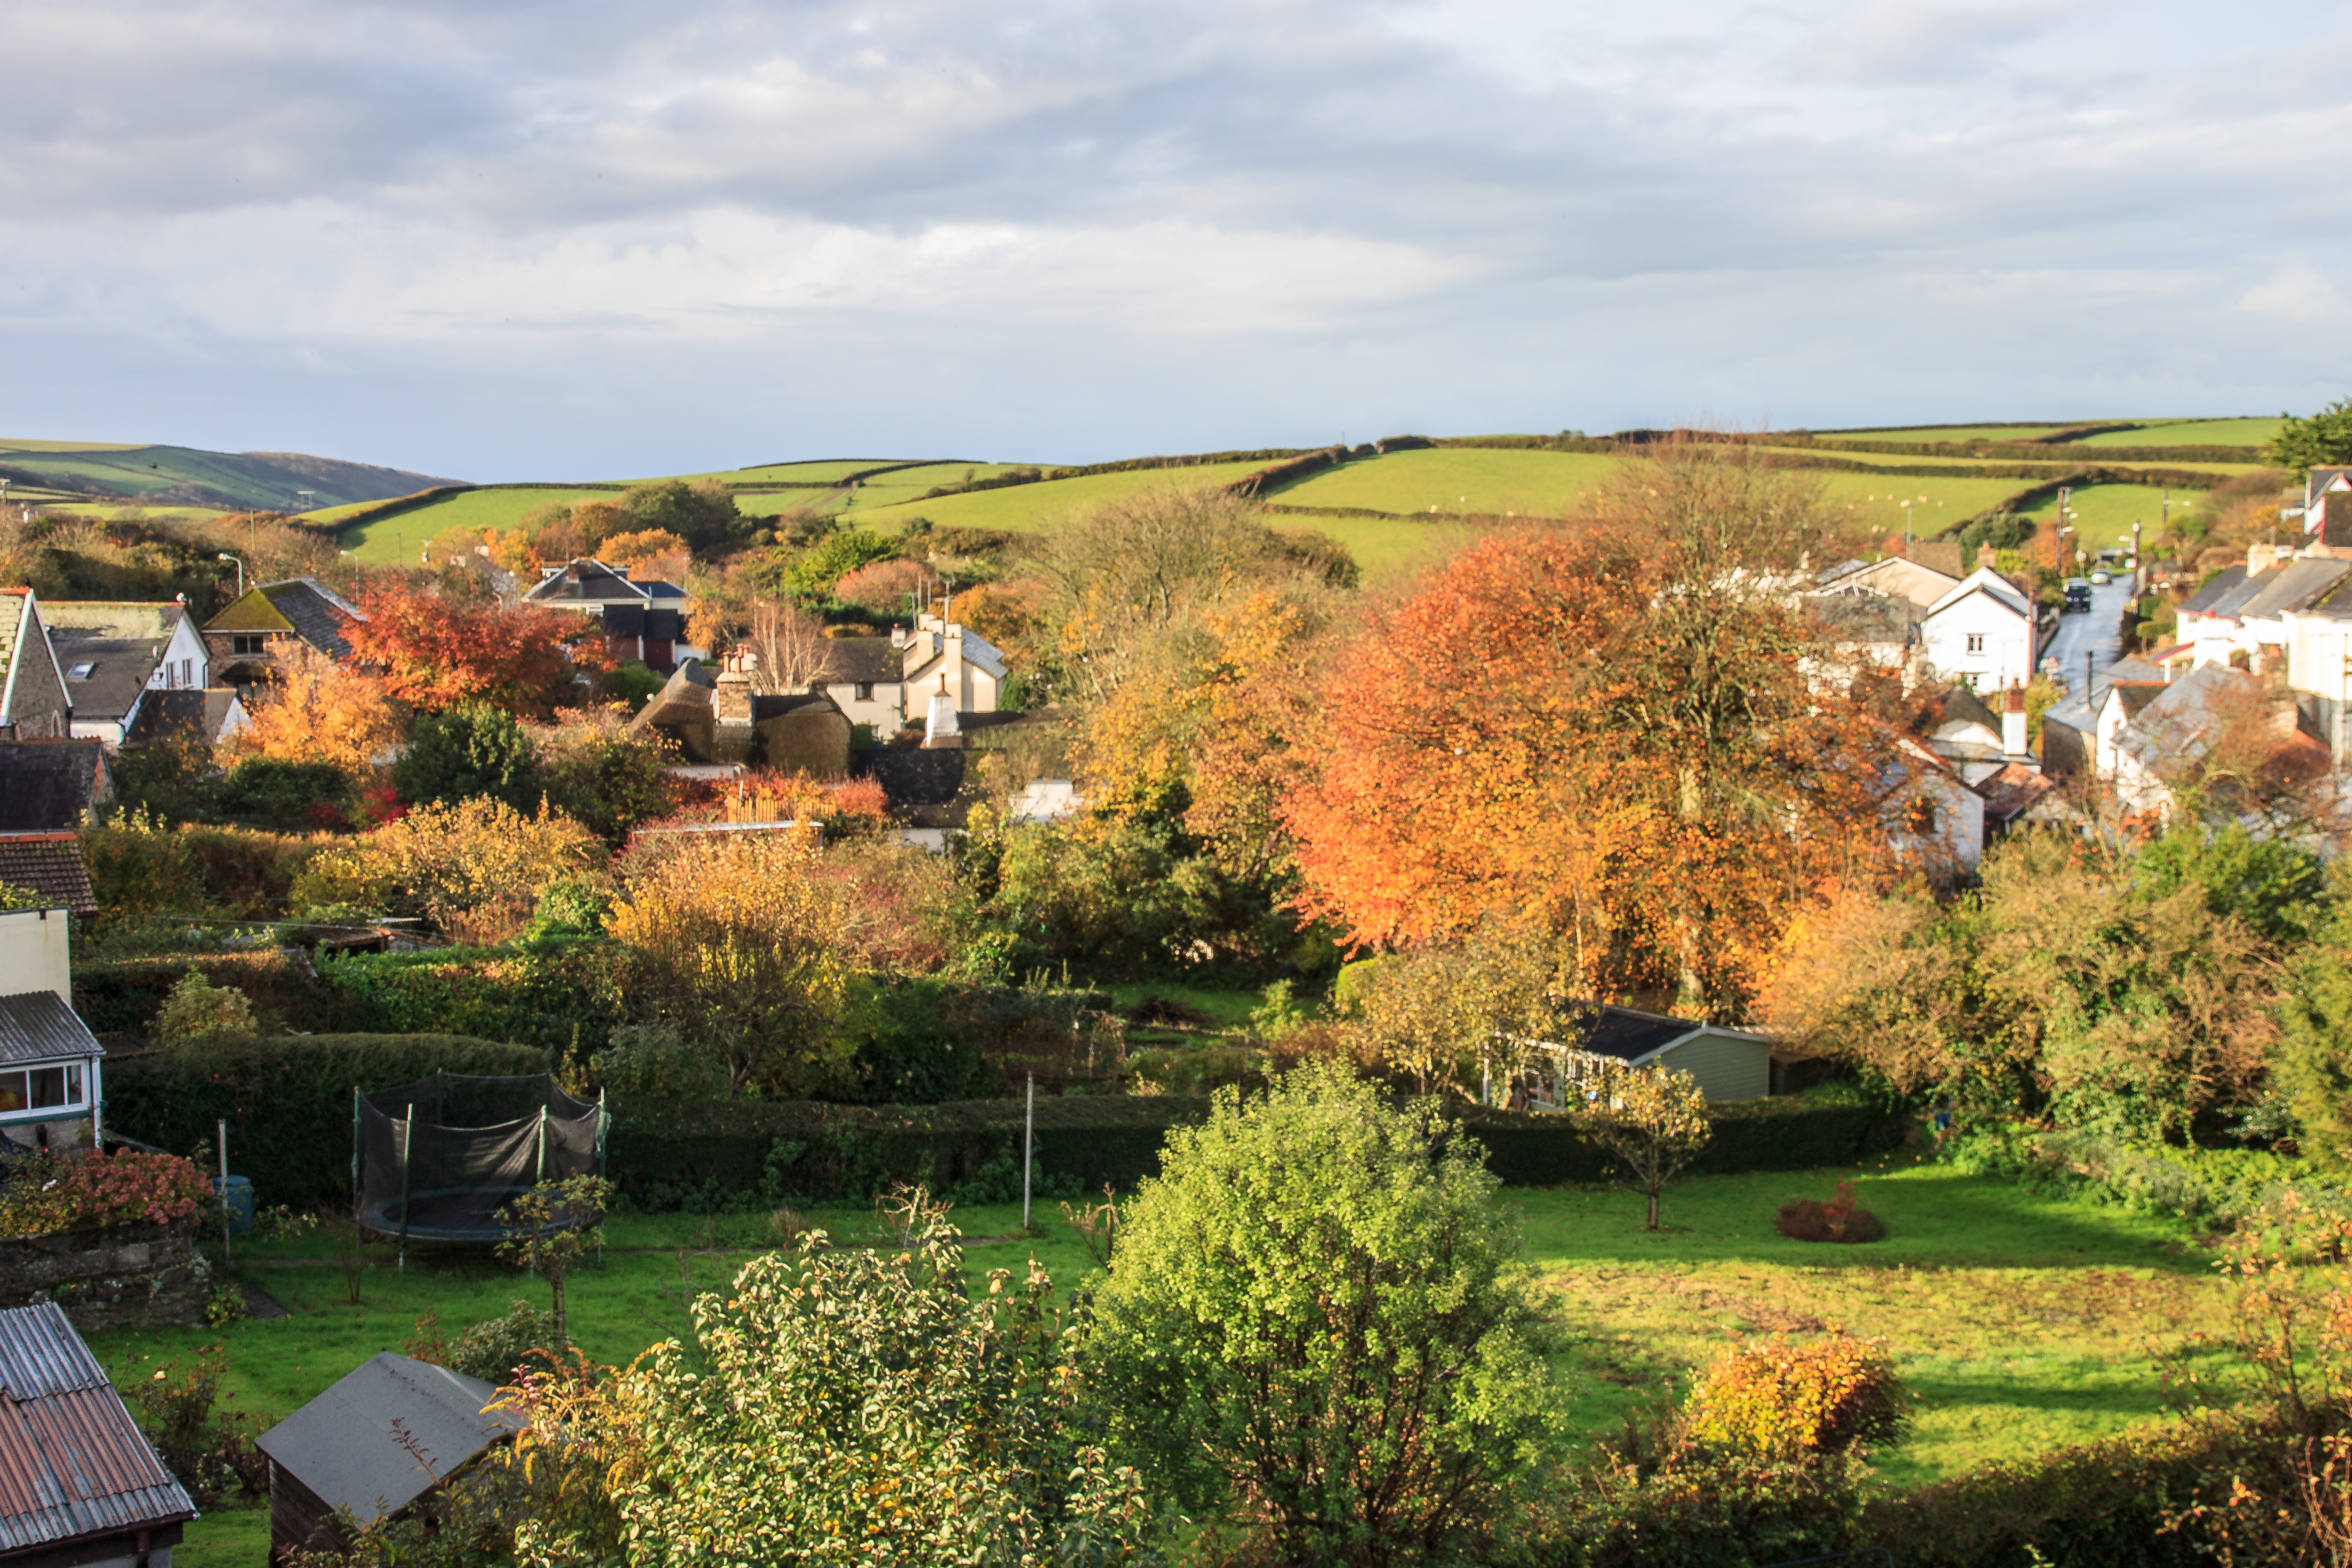 Georgeham in November -View from The Old Bakery